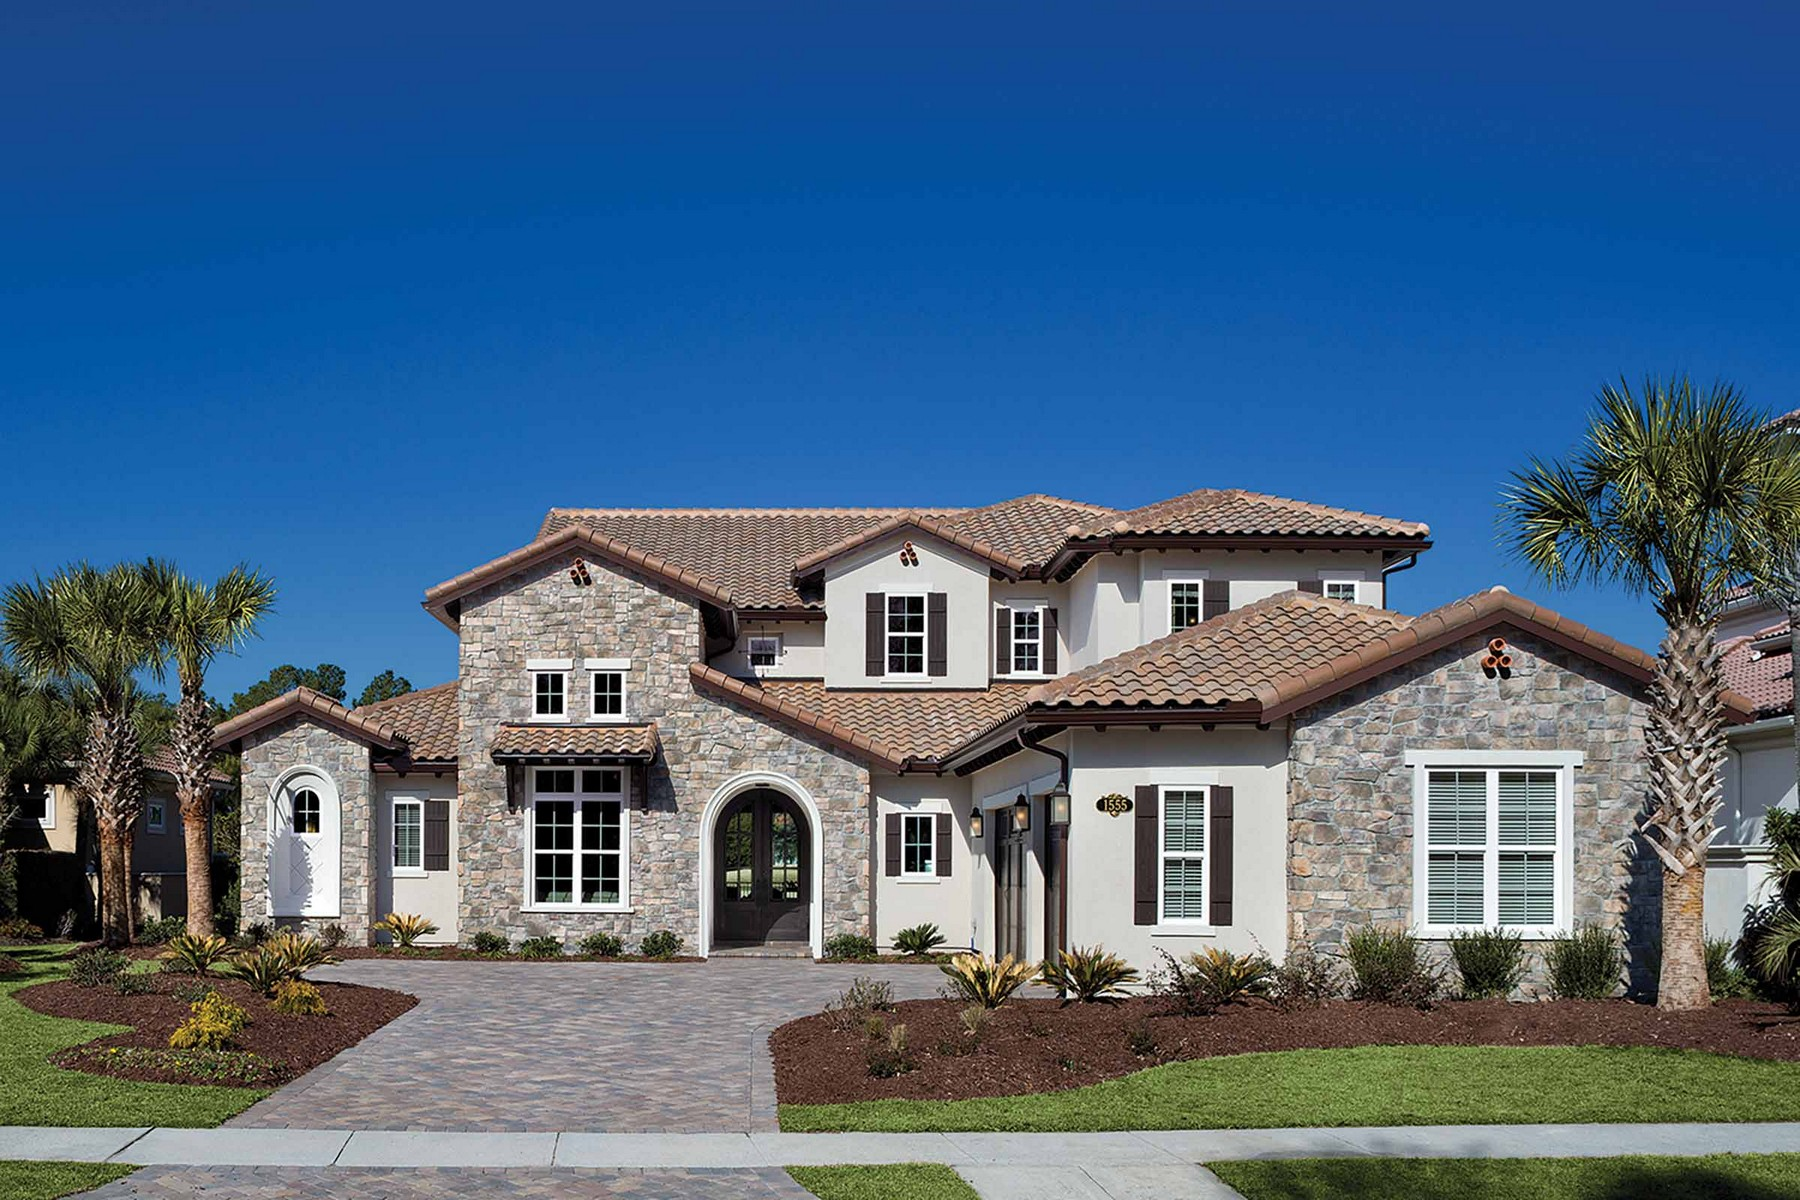 Single Family Home for Sale at To Be Constructed Montalcino by Arthur Rutenberg Homes 1645 Riomar Cove Lane Vero Beach, Florida 32963 United States